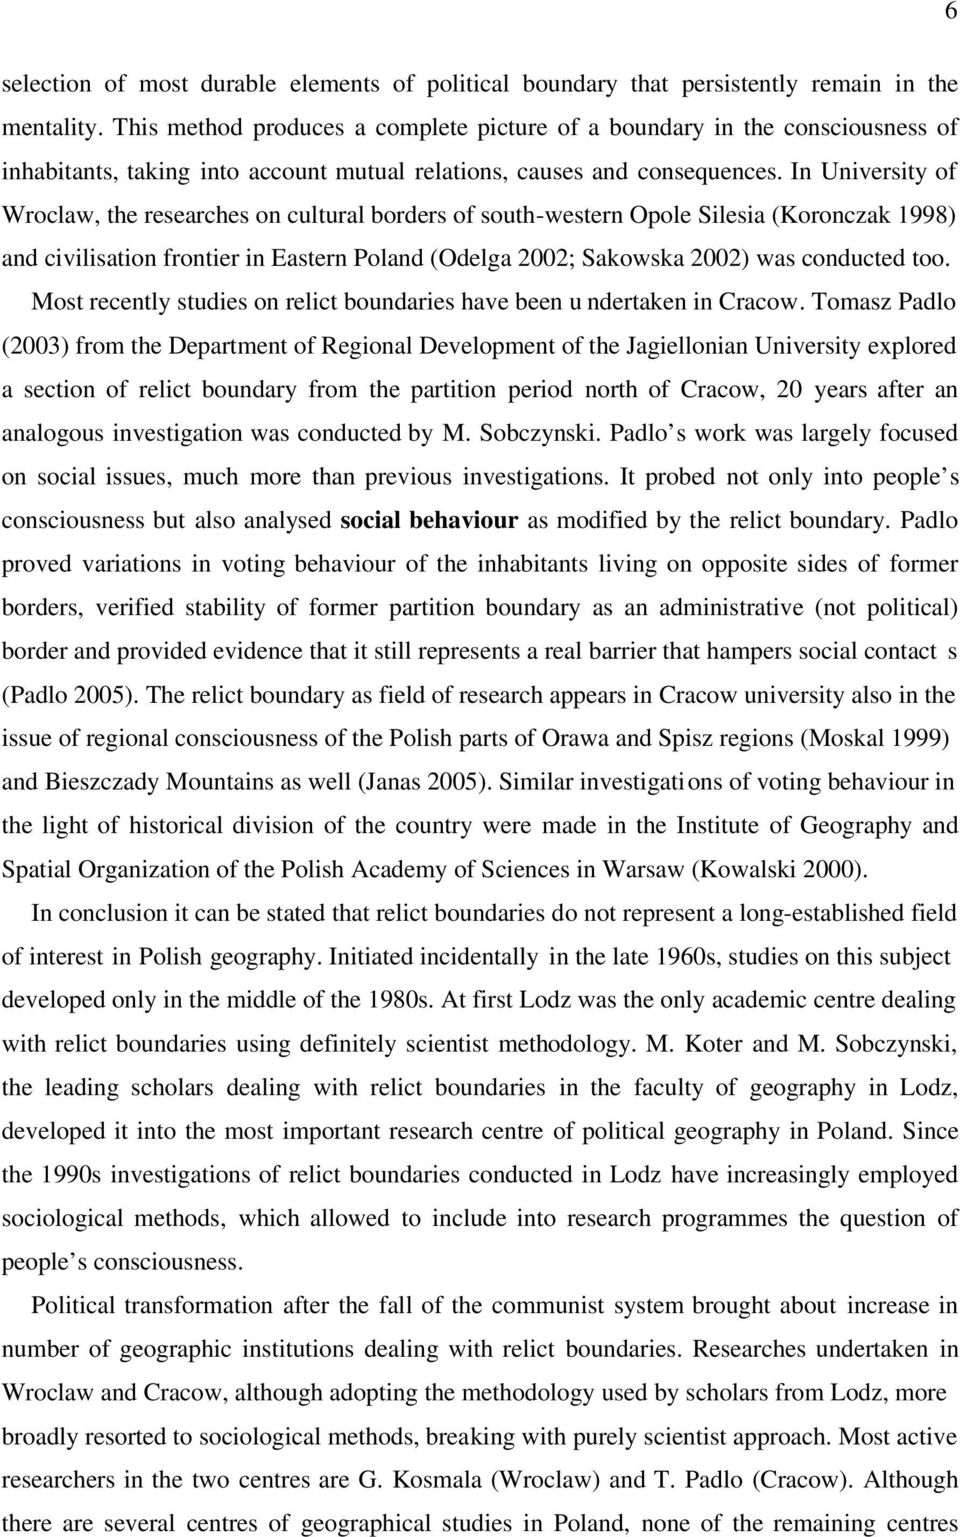 In University of Wroclaw, the researches on cultural borders of south-western Opole Silesia (Koronczak 1998) and civilisation frontier in Eastern Poland (Odelga 2002; Sakowska 2002) was conducted too.